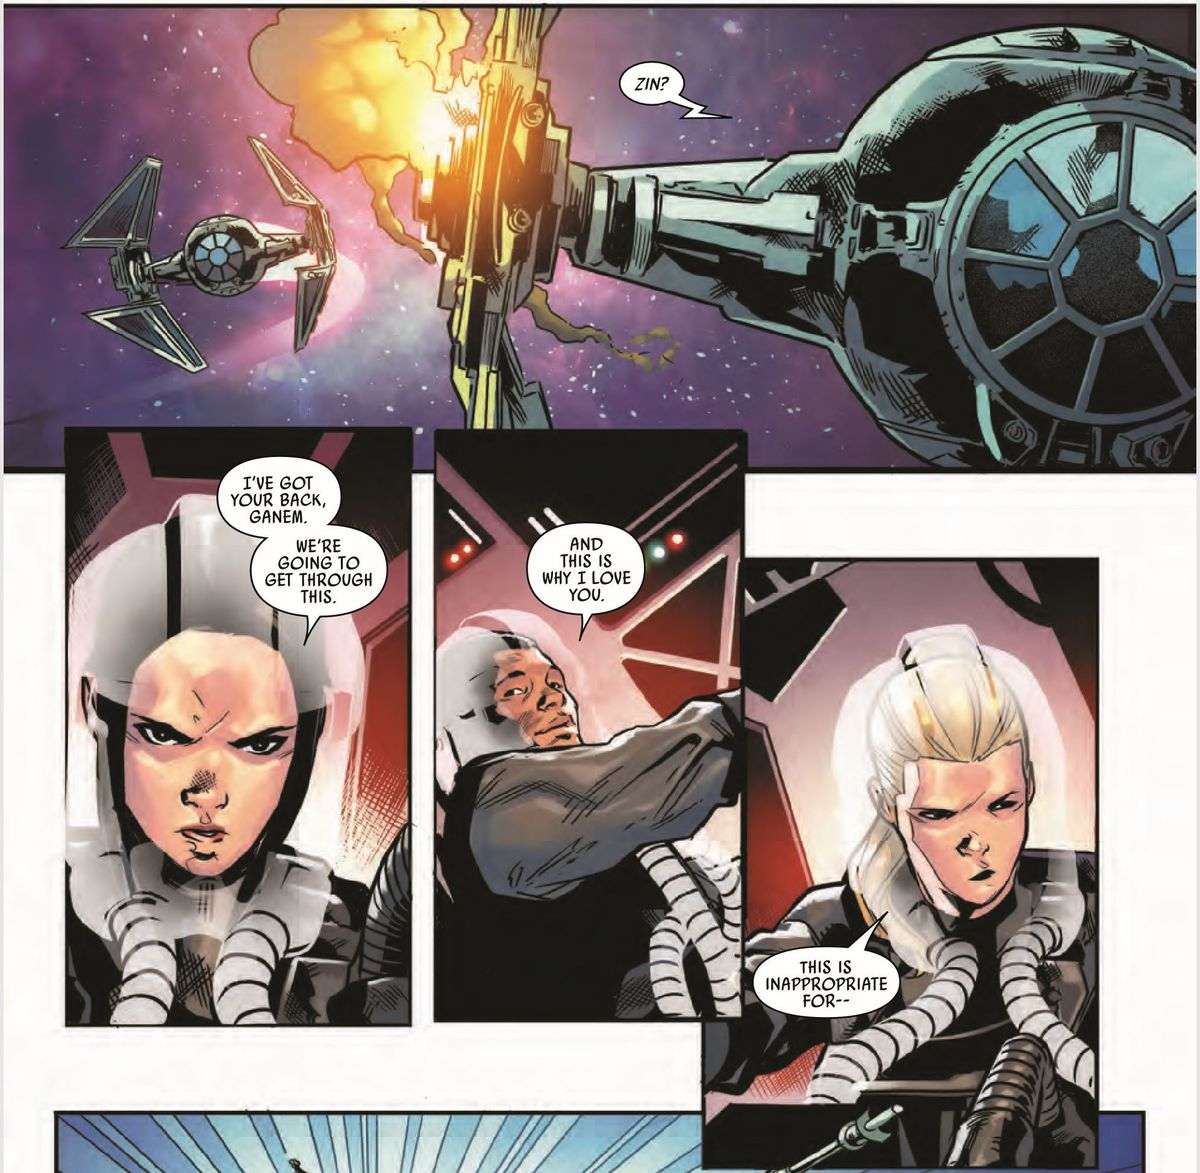 """Three pilots form Shadow Sqaudron bicker like an old married couple in a panel from Marvel's TIE Fighter #4. """"I've got your back, Ganem,"""" says Zin, while Jeela does not approve."""